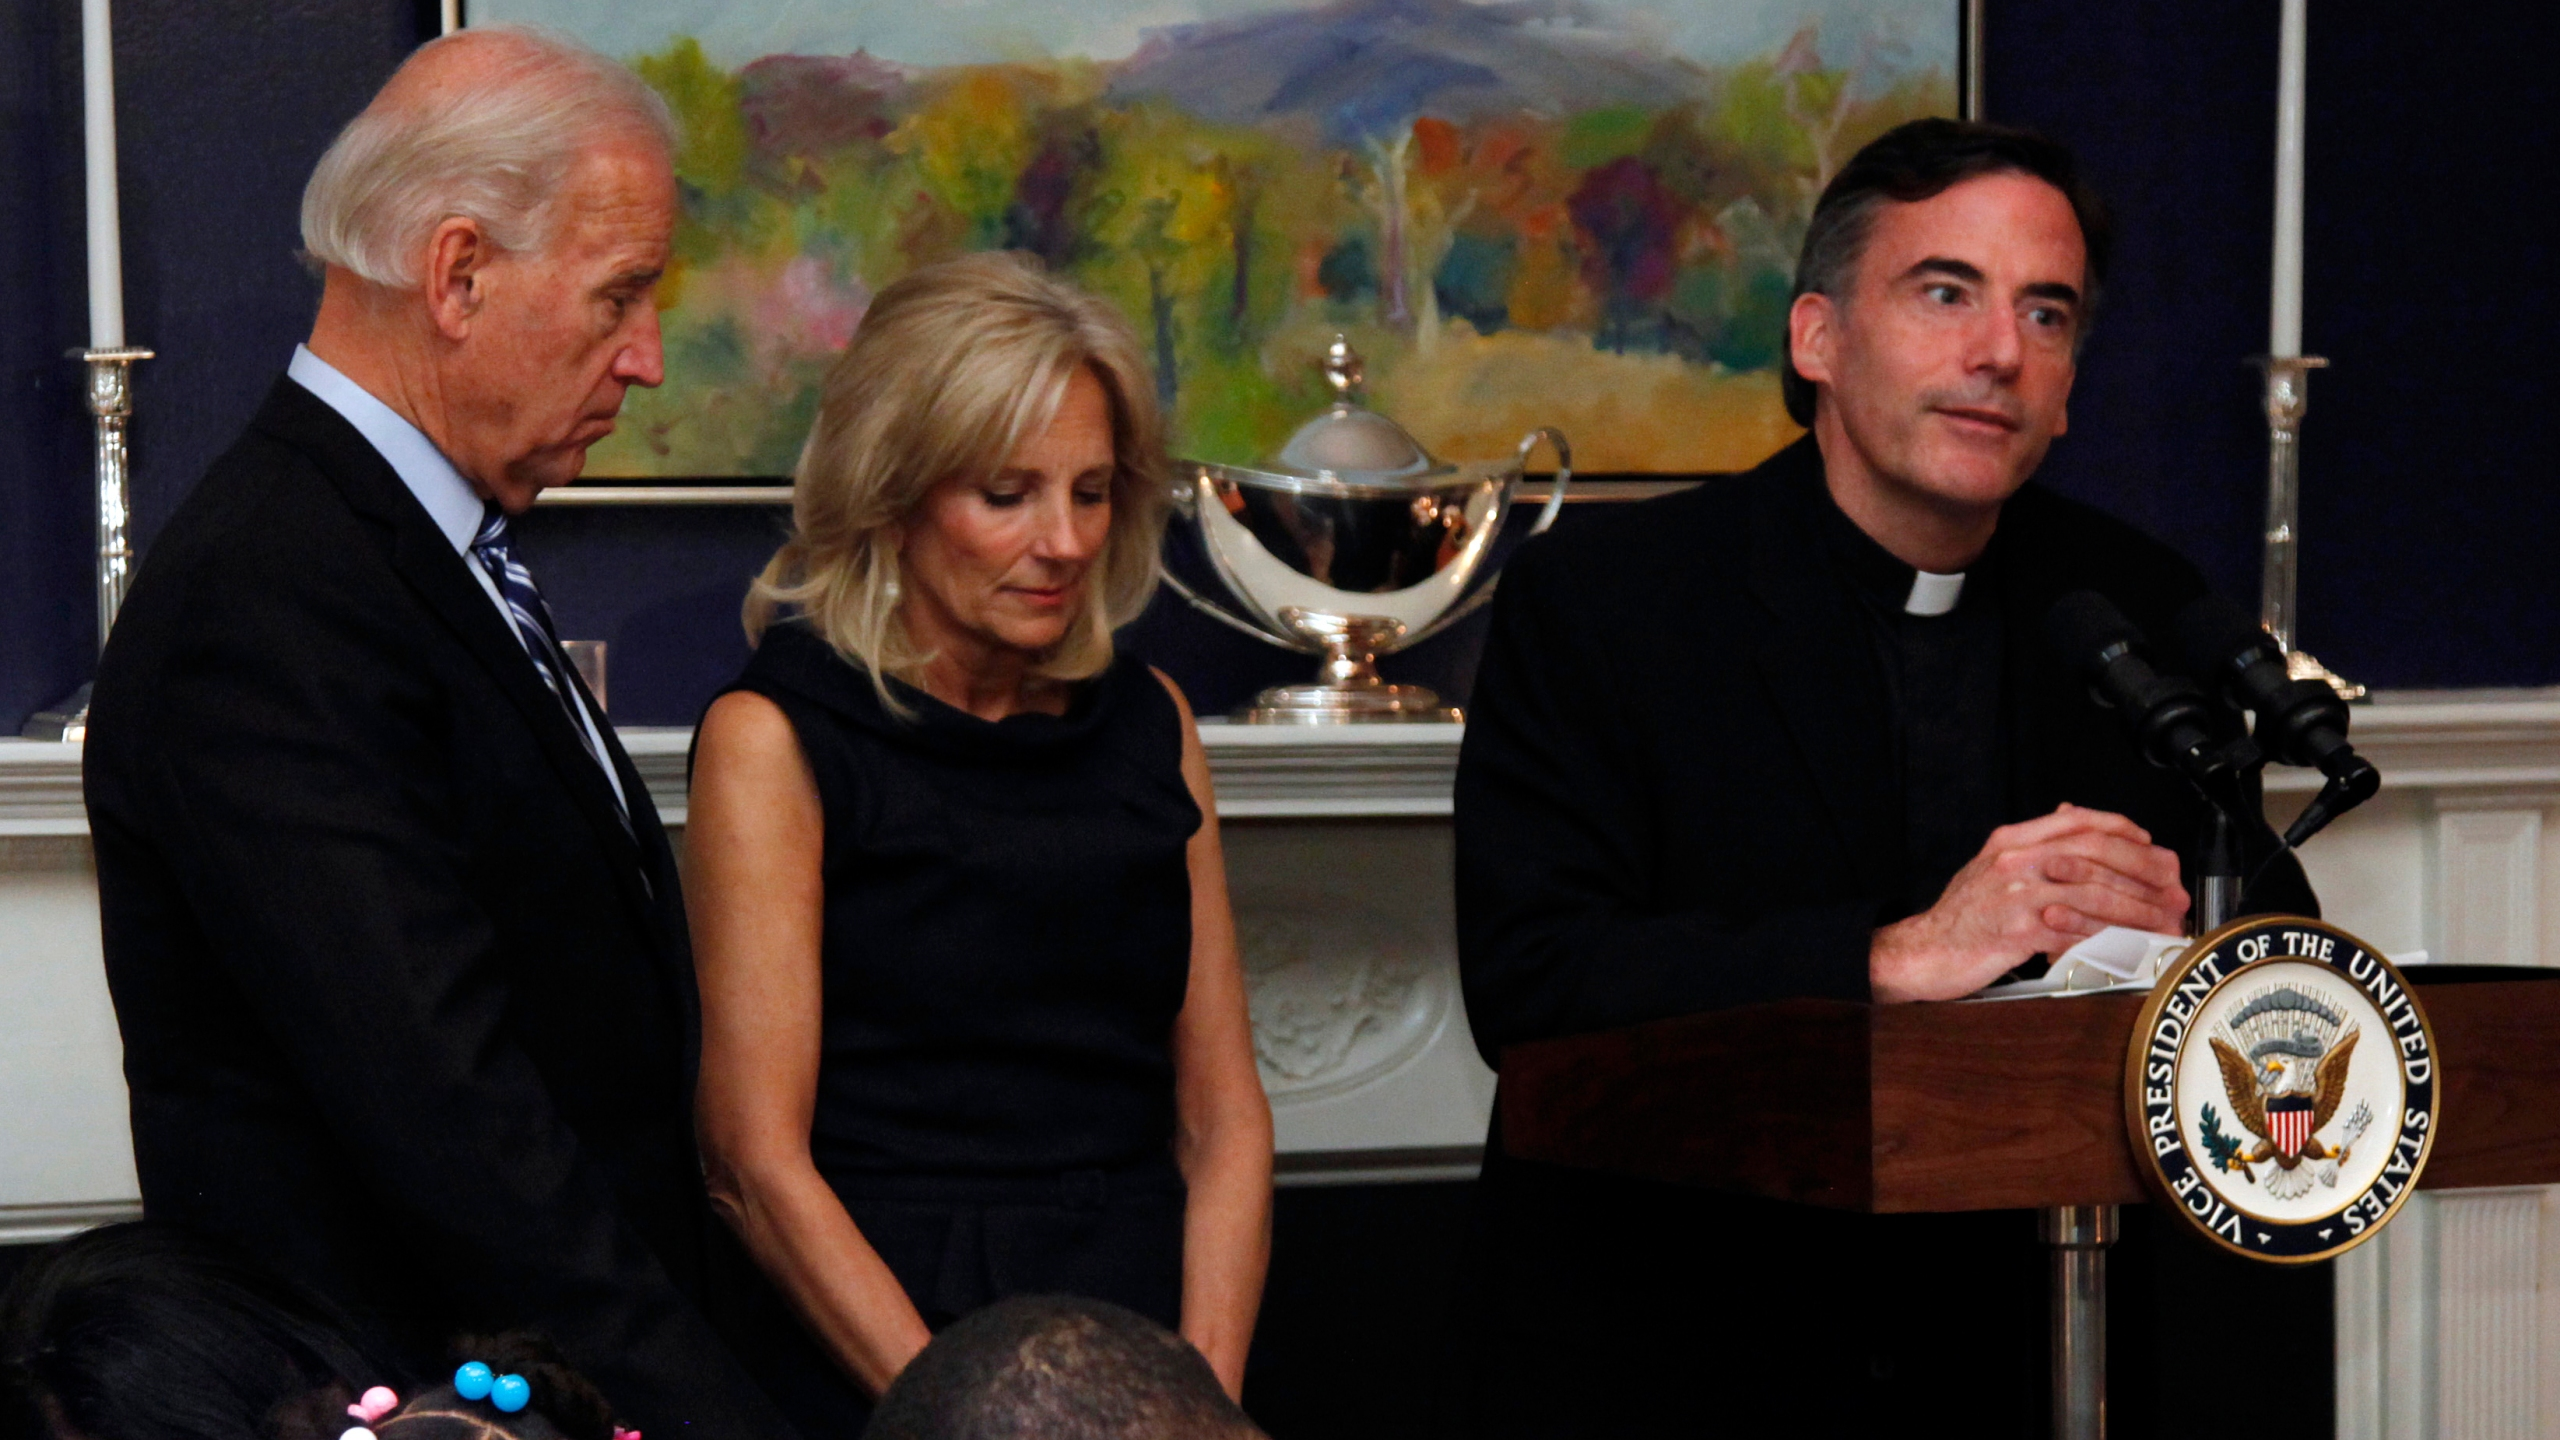 In this Nov. 22, 2010 file photo, then Vice President Joe Biden and his wife, Jill Biden stand with heads bowed as the Rev. Kevin O'Brien says the blessing during a Thanksgiving meal for Wounded Warriors in Washington. (Carolyn Kaster/Associated Press)